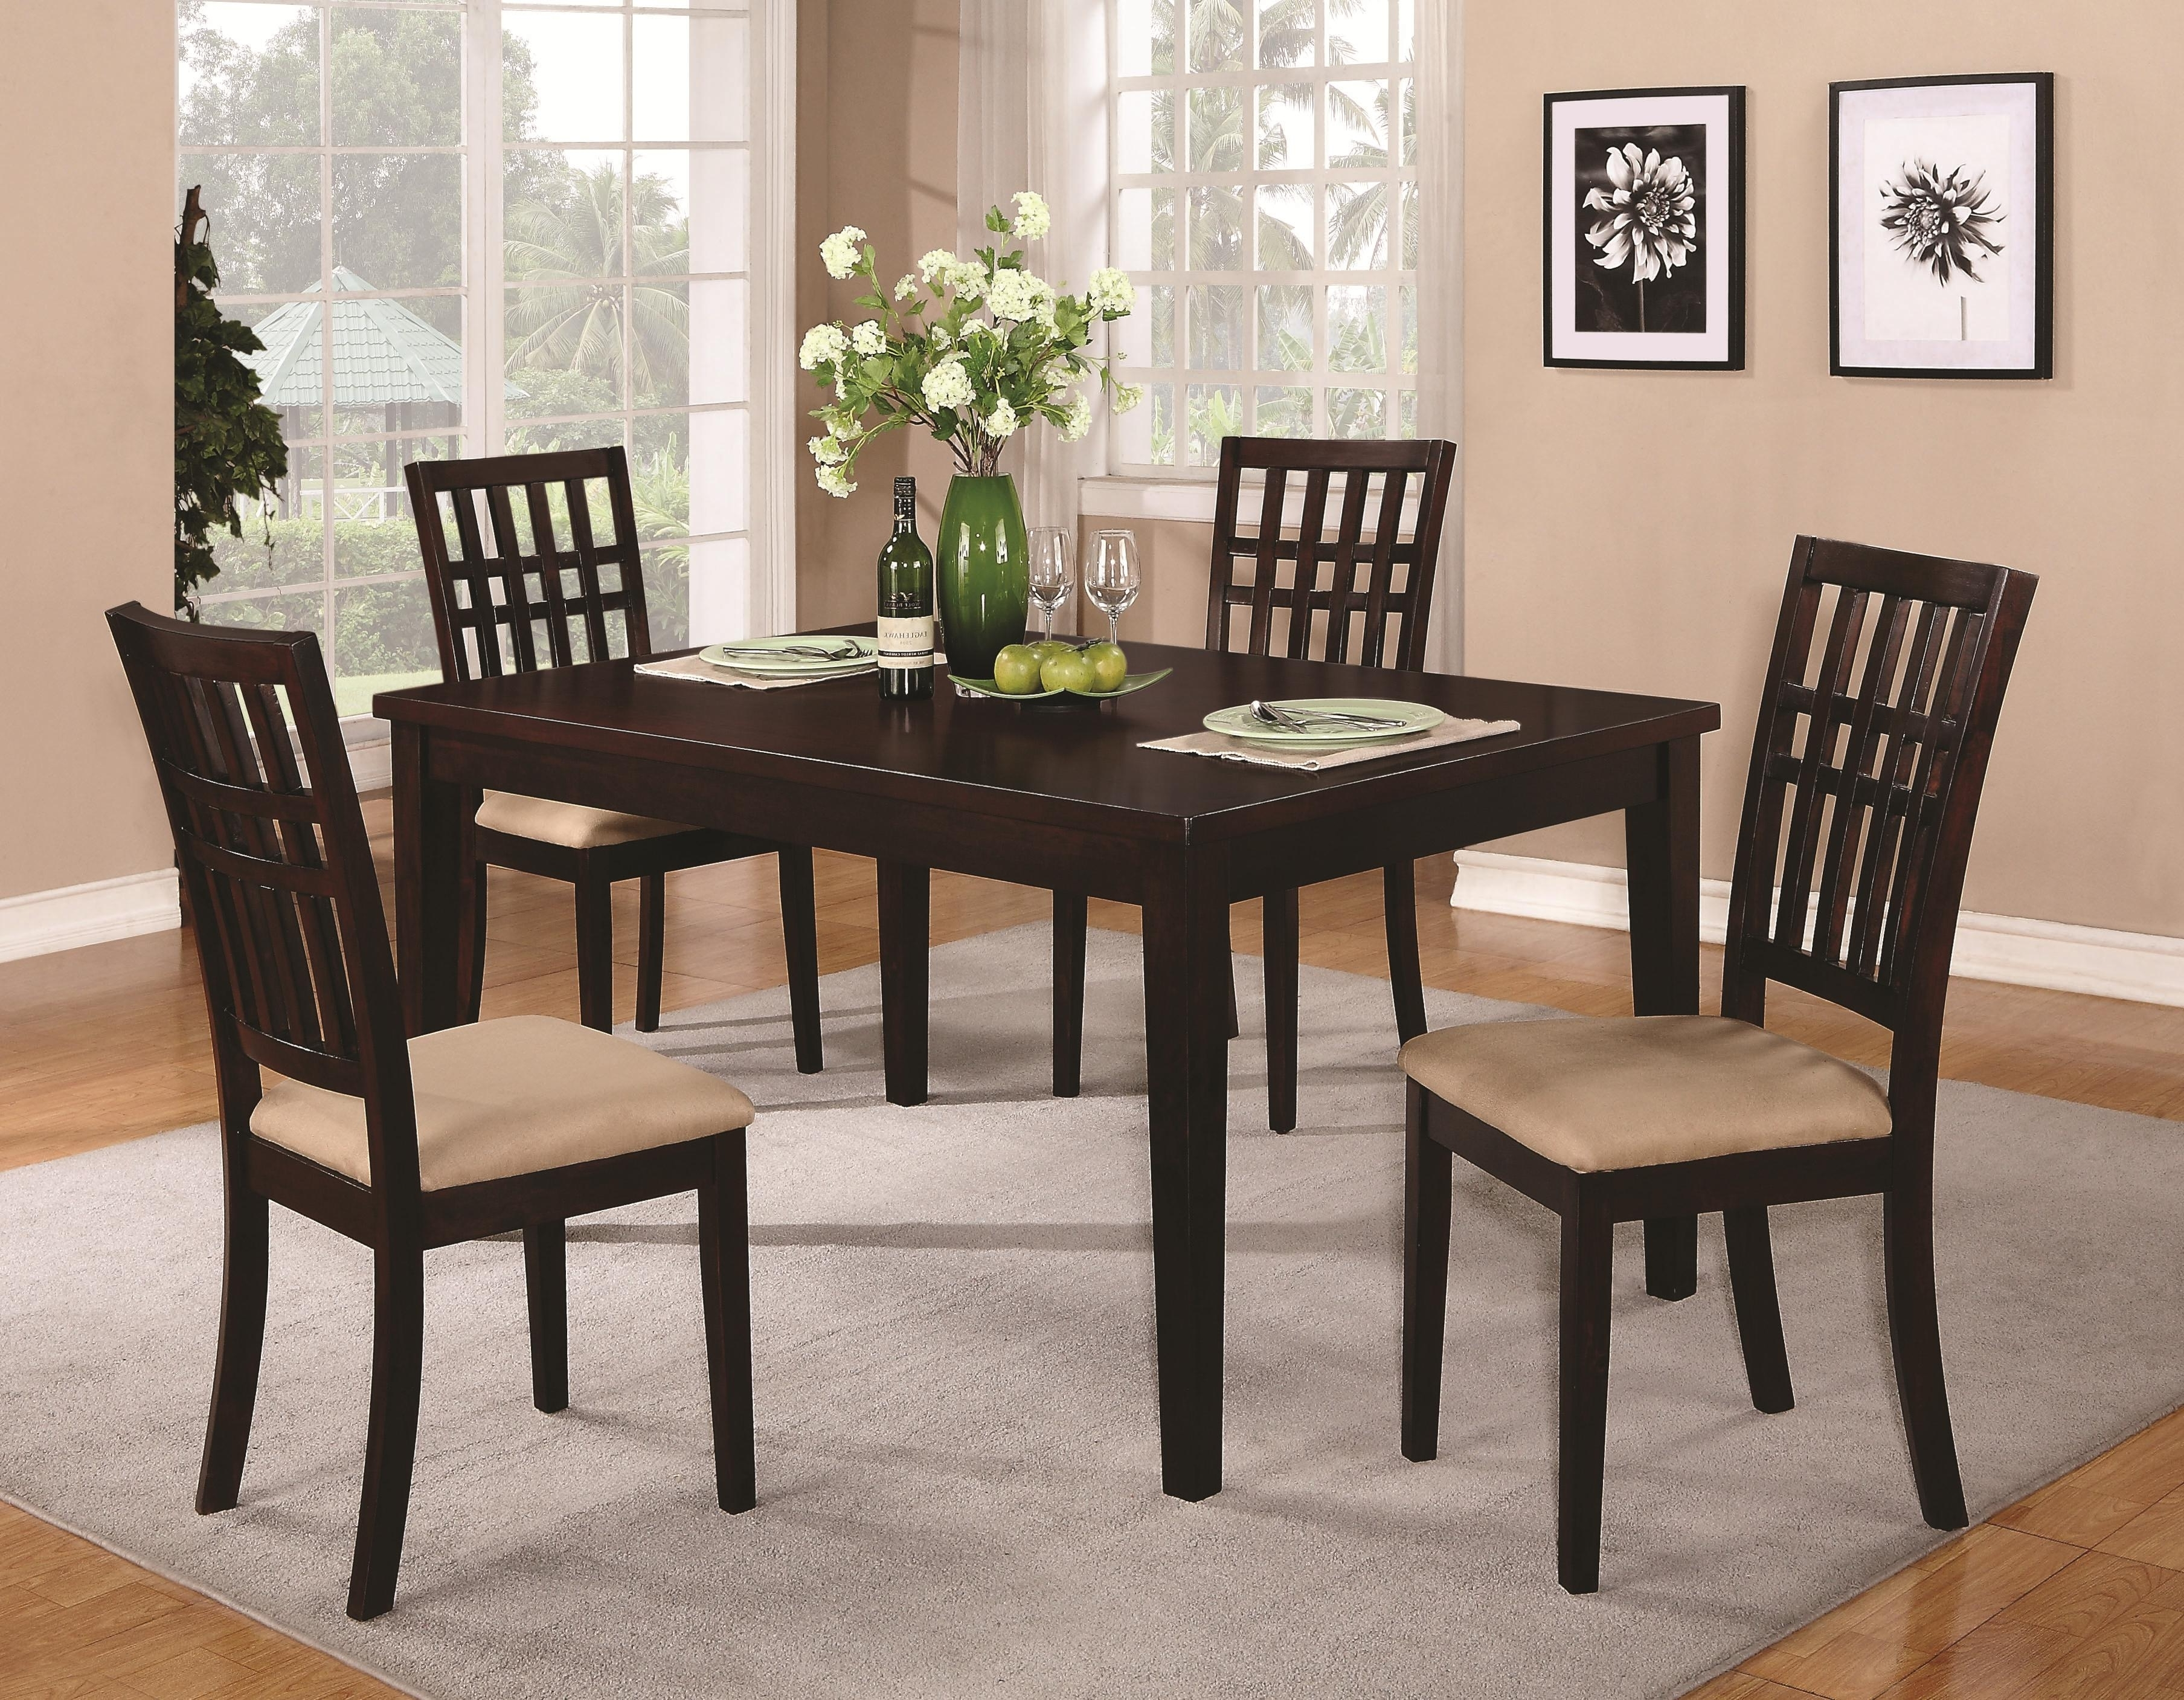 Picture of: Chair Dining Room Chairs And Bench Upholstered Curved With Back Layjao